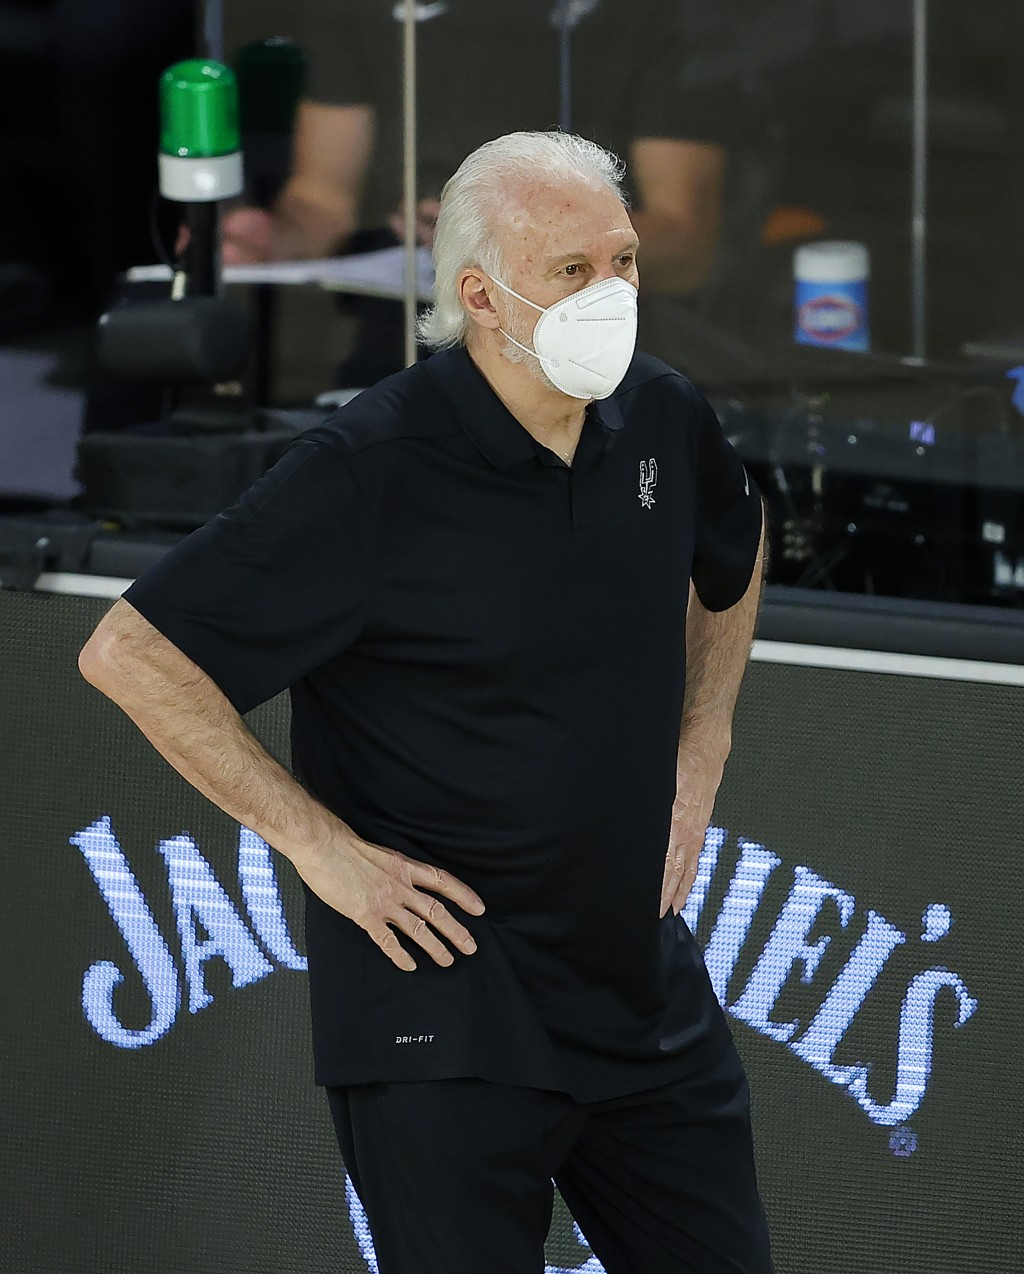 San Antonio Spurs head coach Gregg Popovich watches during the second half of an NBA basketball game against the Utah Jazz Friday, Aug. 7, 2020, in La...